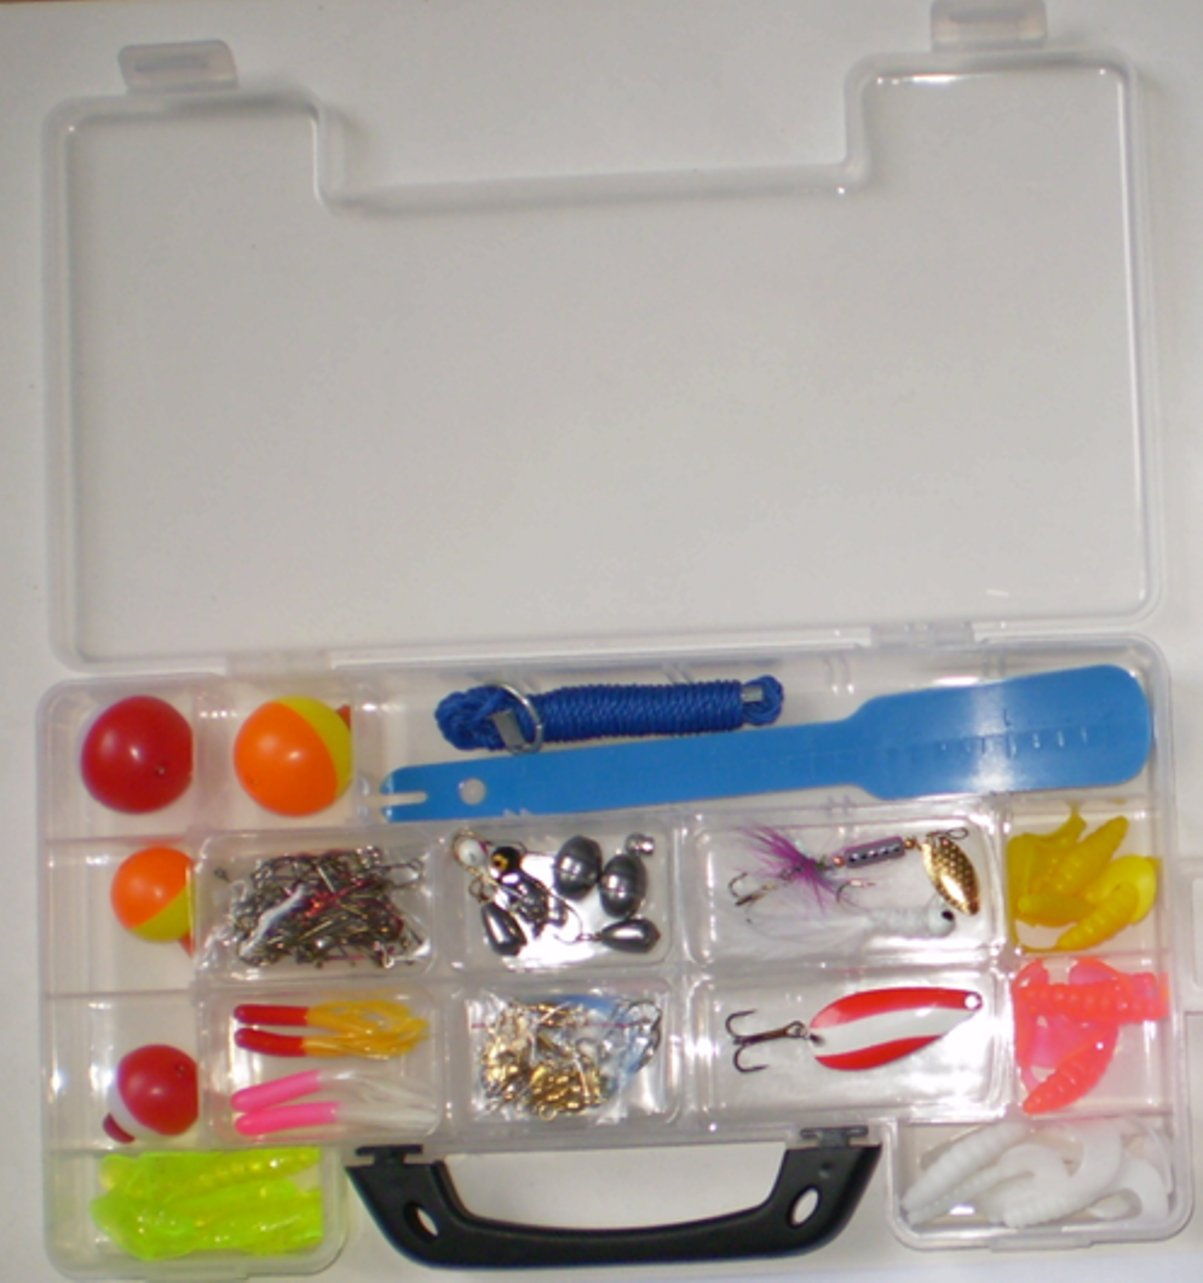 South Bend KIT-90 Fishing Tackle Kit, 137-Piece